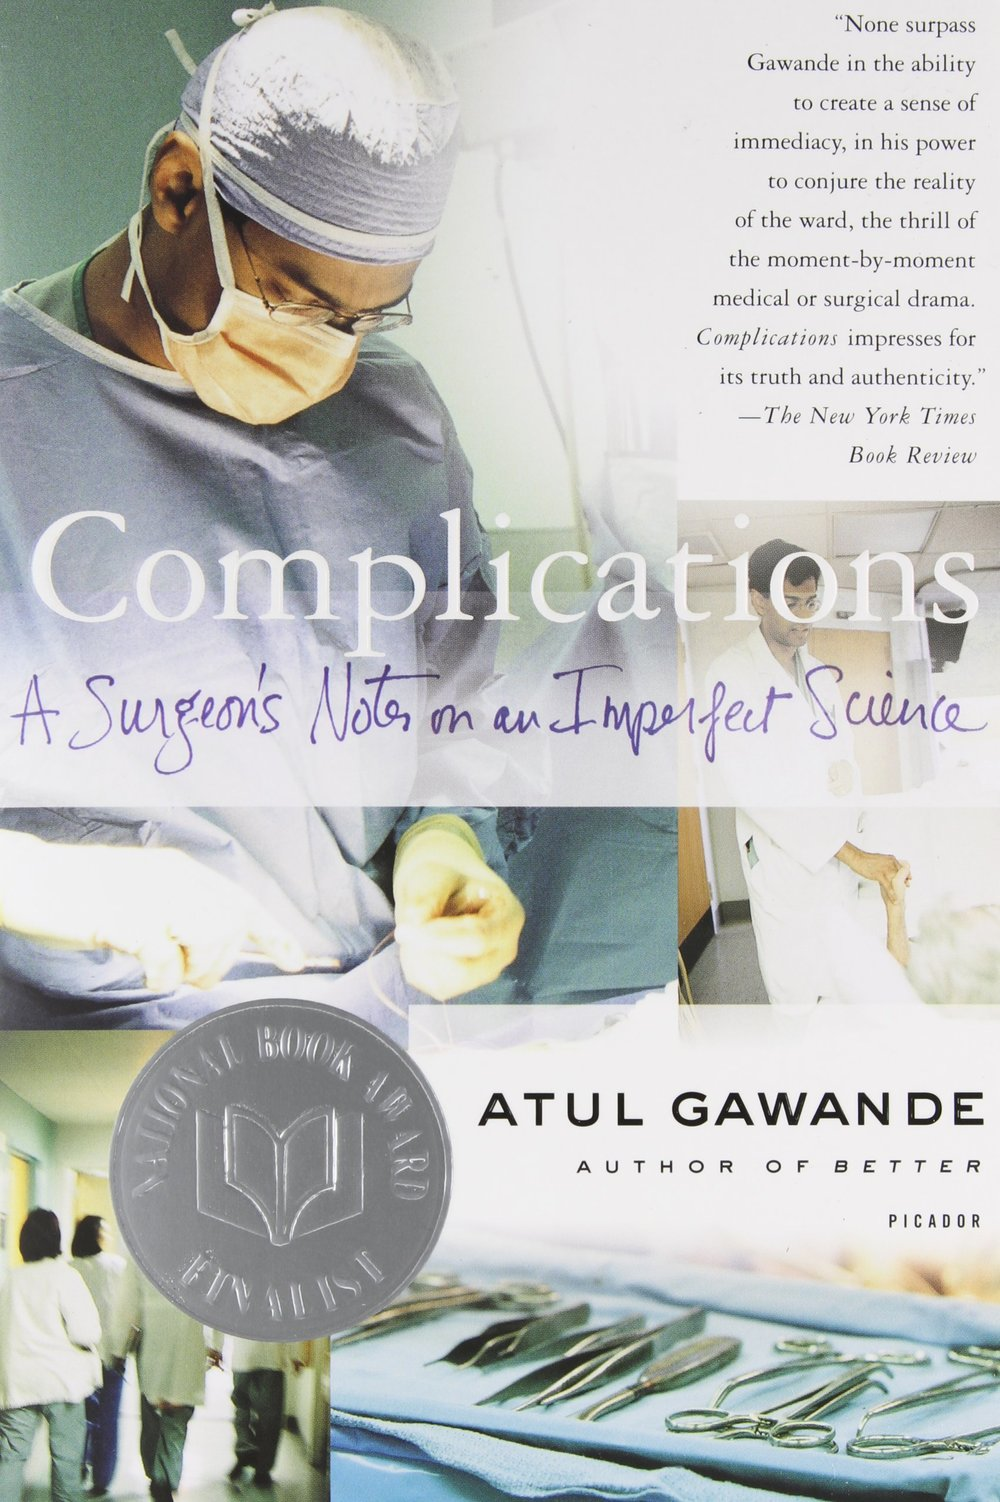 "Gawande, a surgeon and former Rhodes scholar, illuminates ""the moments in which medicine actually happens,"" and describes his profession as an ""enterprise of constantly changing knowledge, uncertain information, fallible individuals, and at the same time lives on the line."" He includes accounts of medical traumas and analysis of doctor anxiety and burnout with humor, sensitivity and critical intelligence."